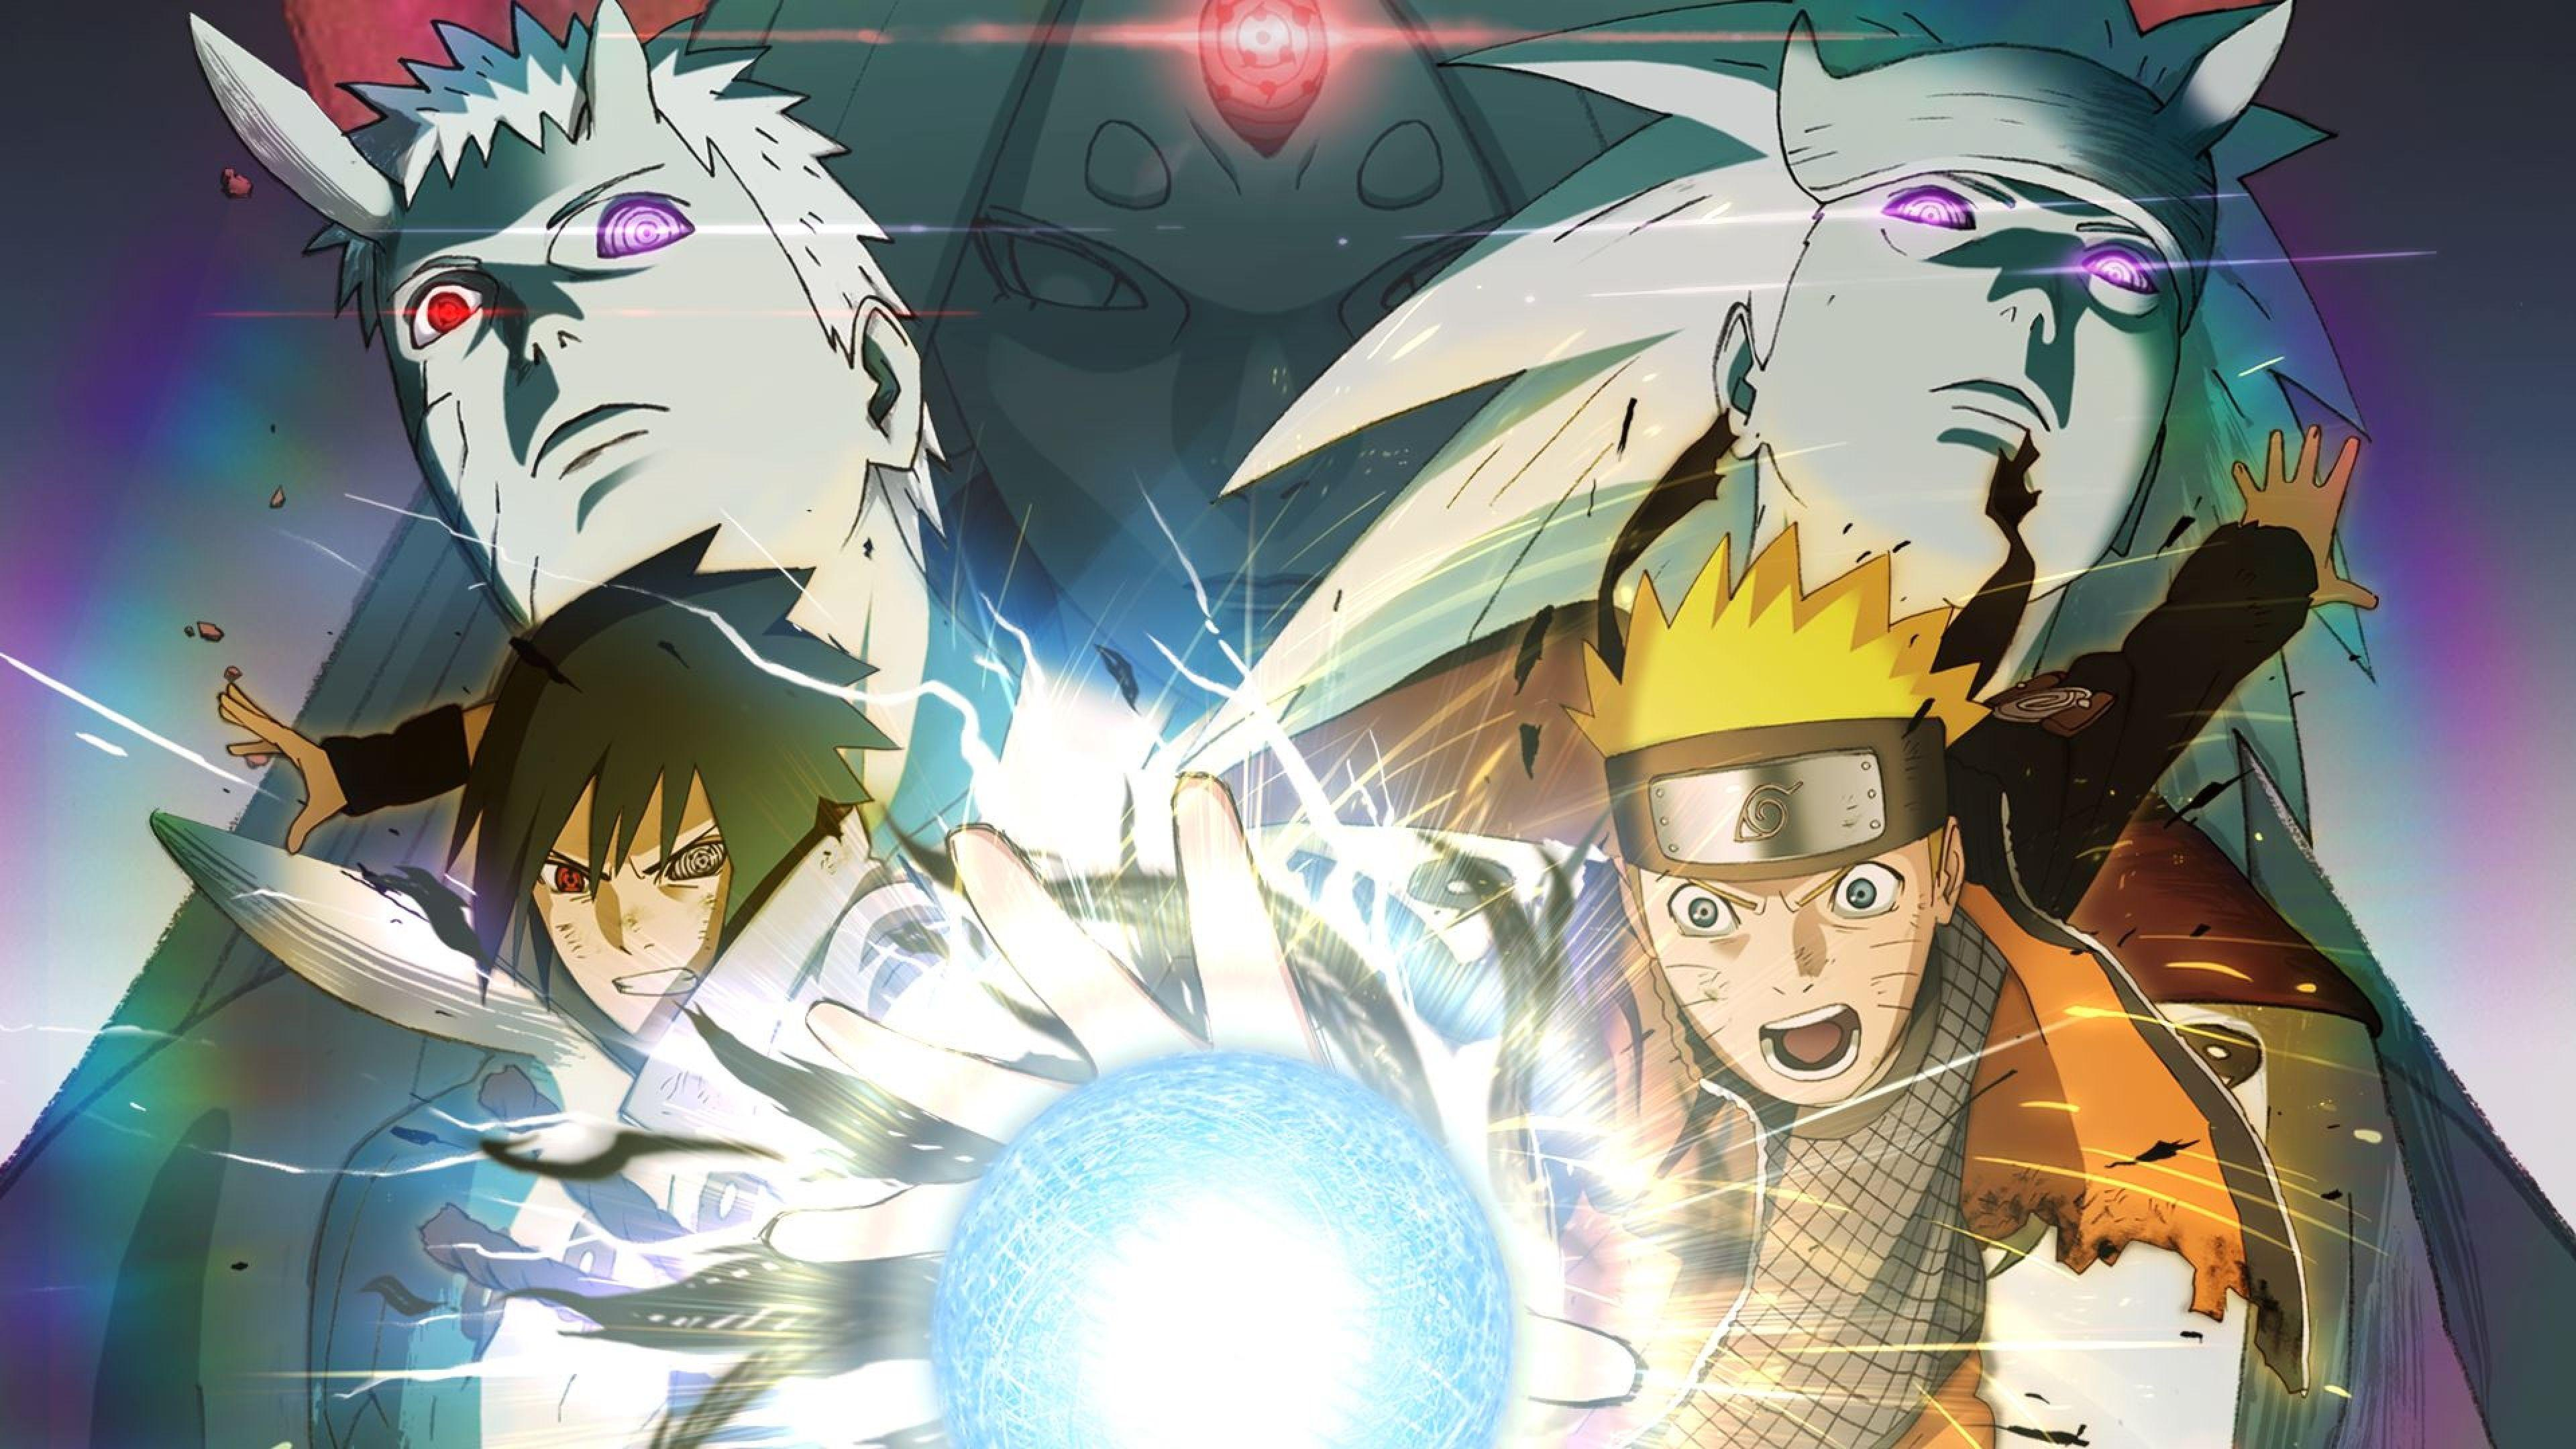 Naruto Shippuden: Ultimate Ninja Storm 4 Wallpapers - Wallpaper Cave